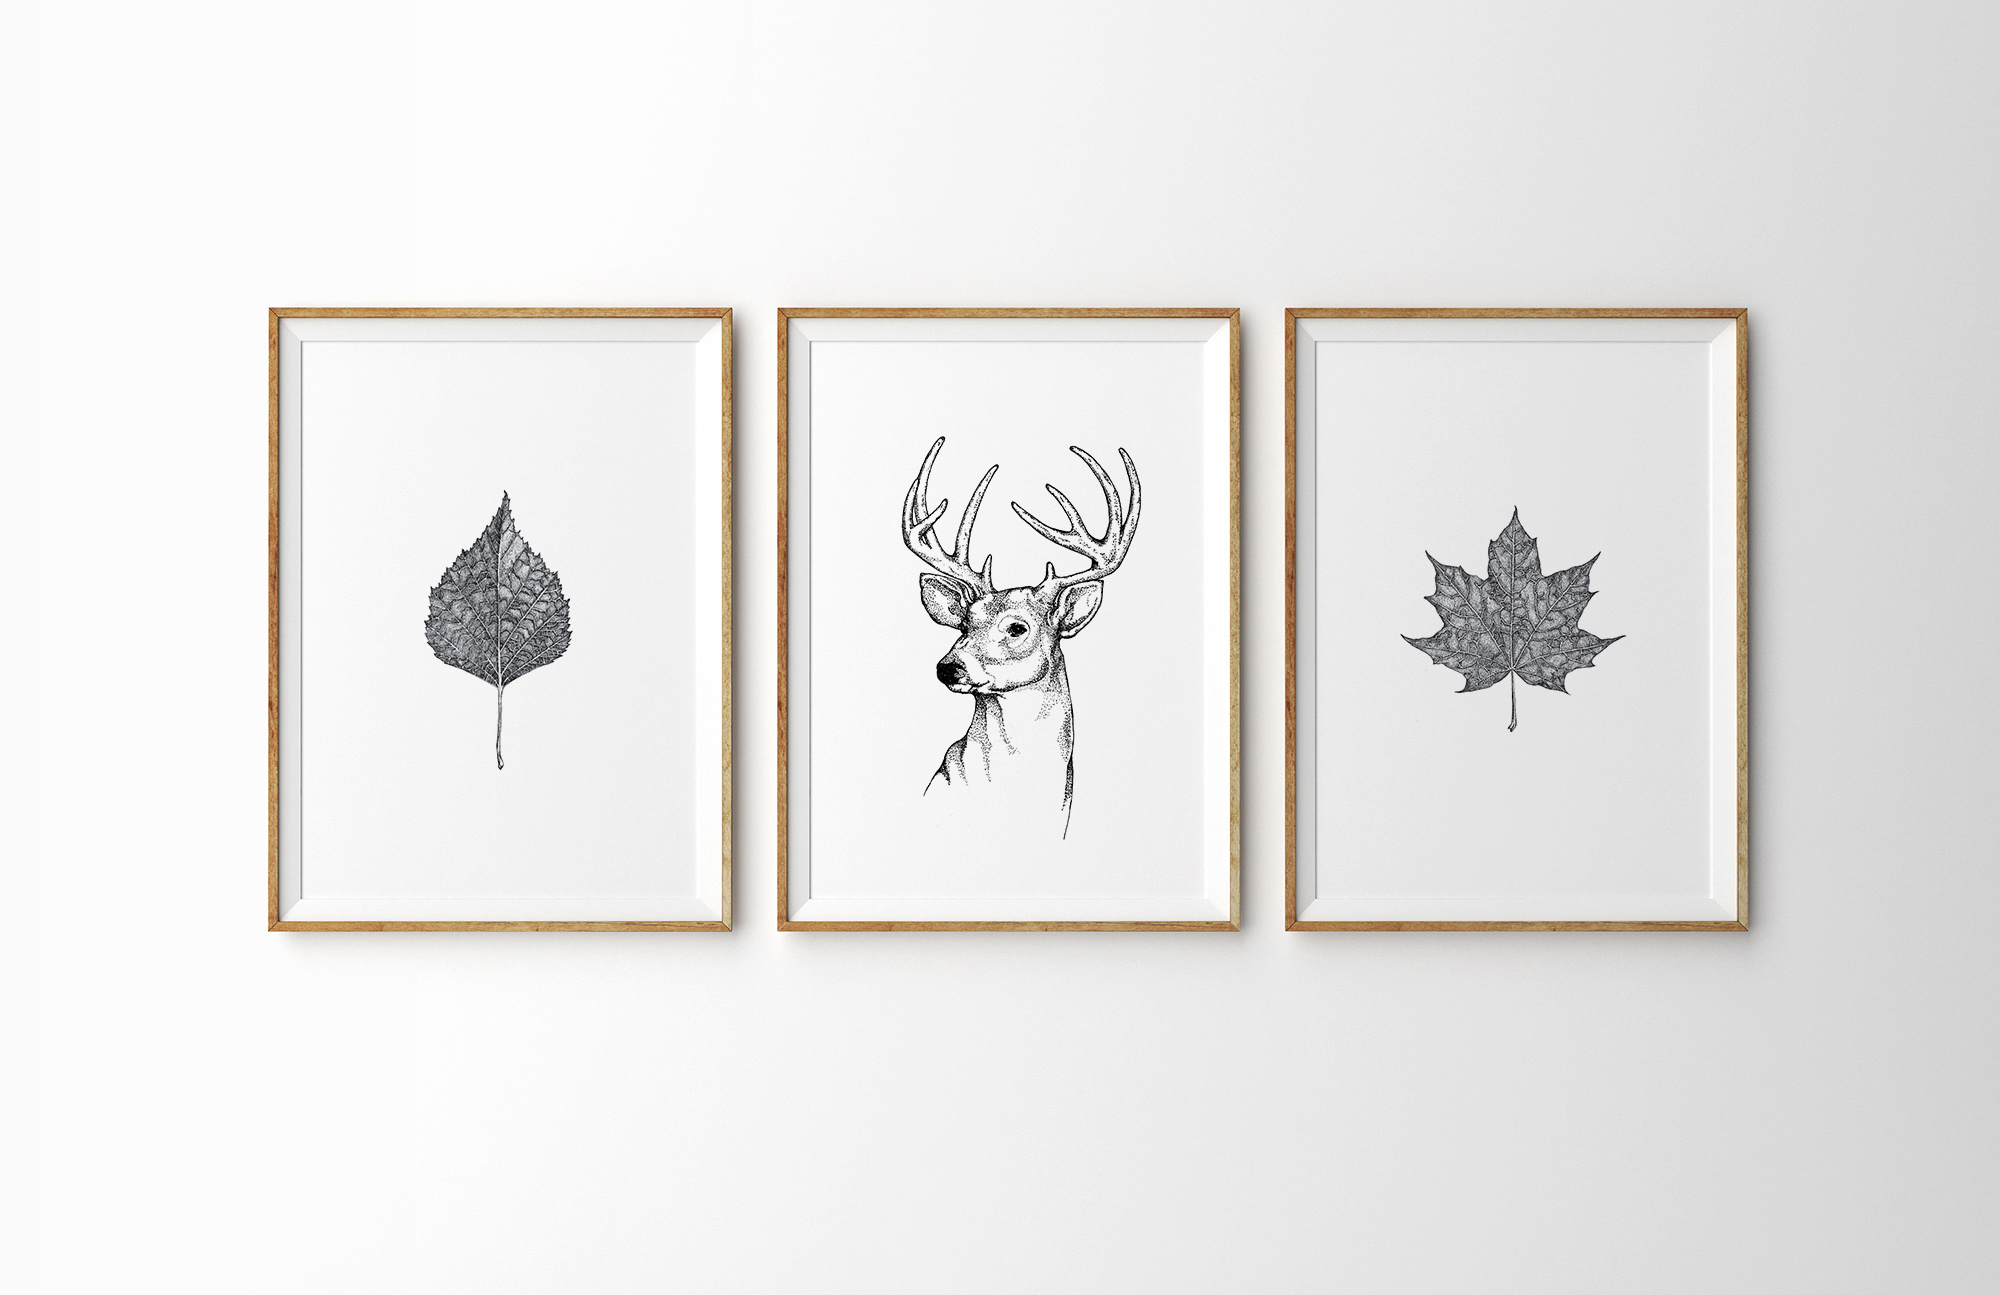 AFFICHE-DECORATION-POSTER-MUR-DESIGN-ILLUSTRATION-NATURE-FEUILLE